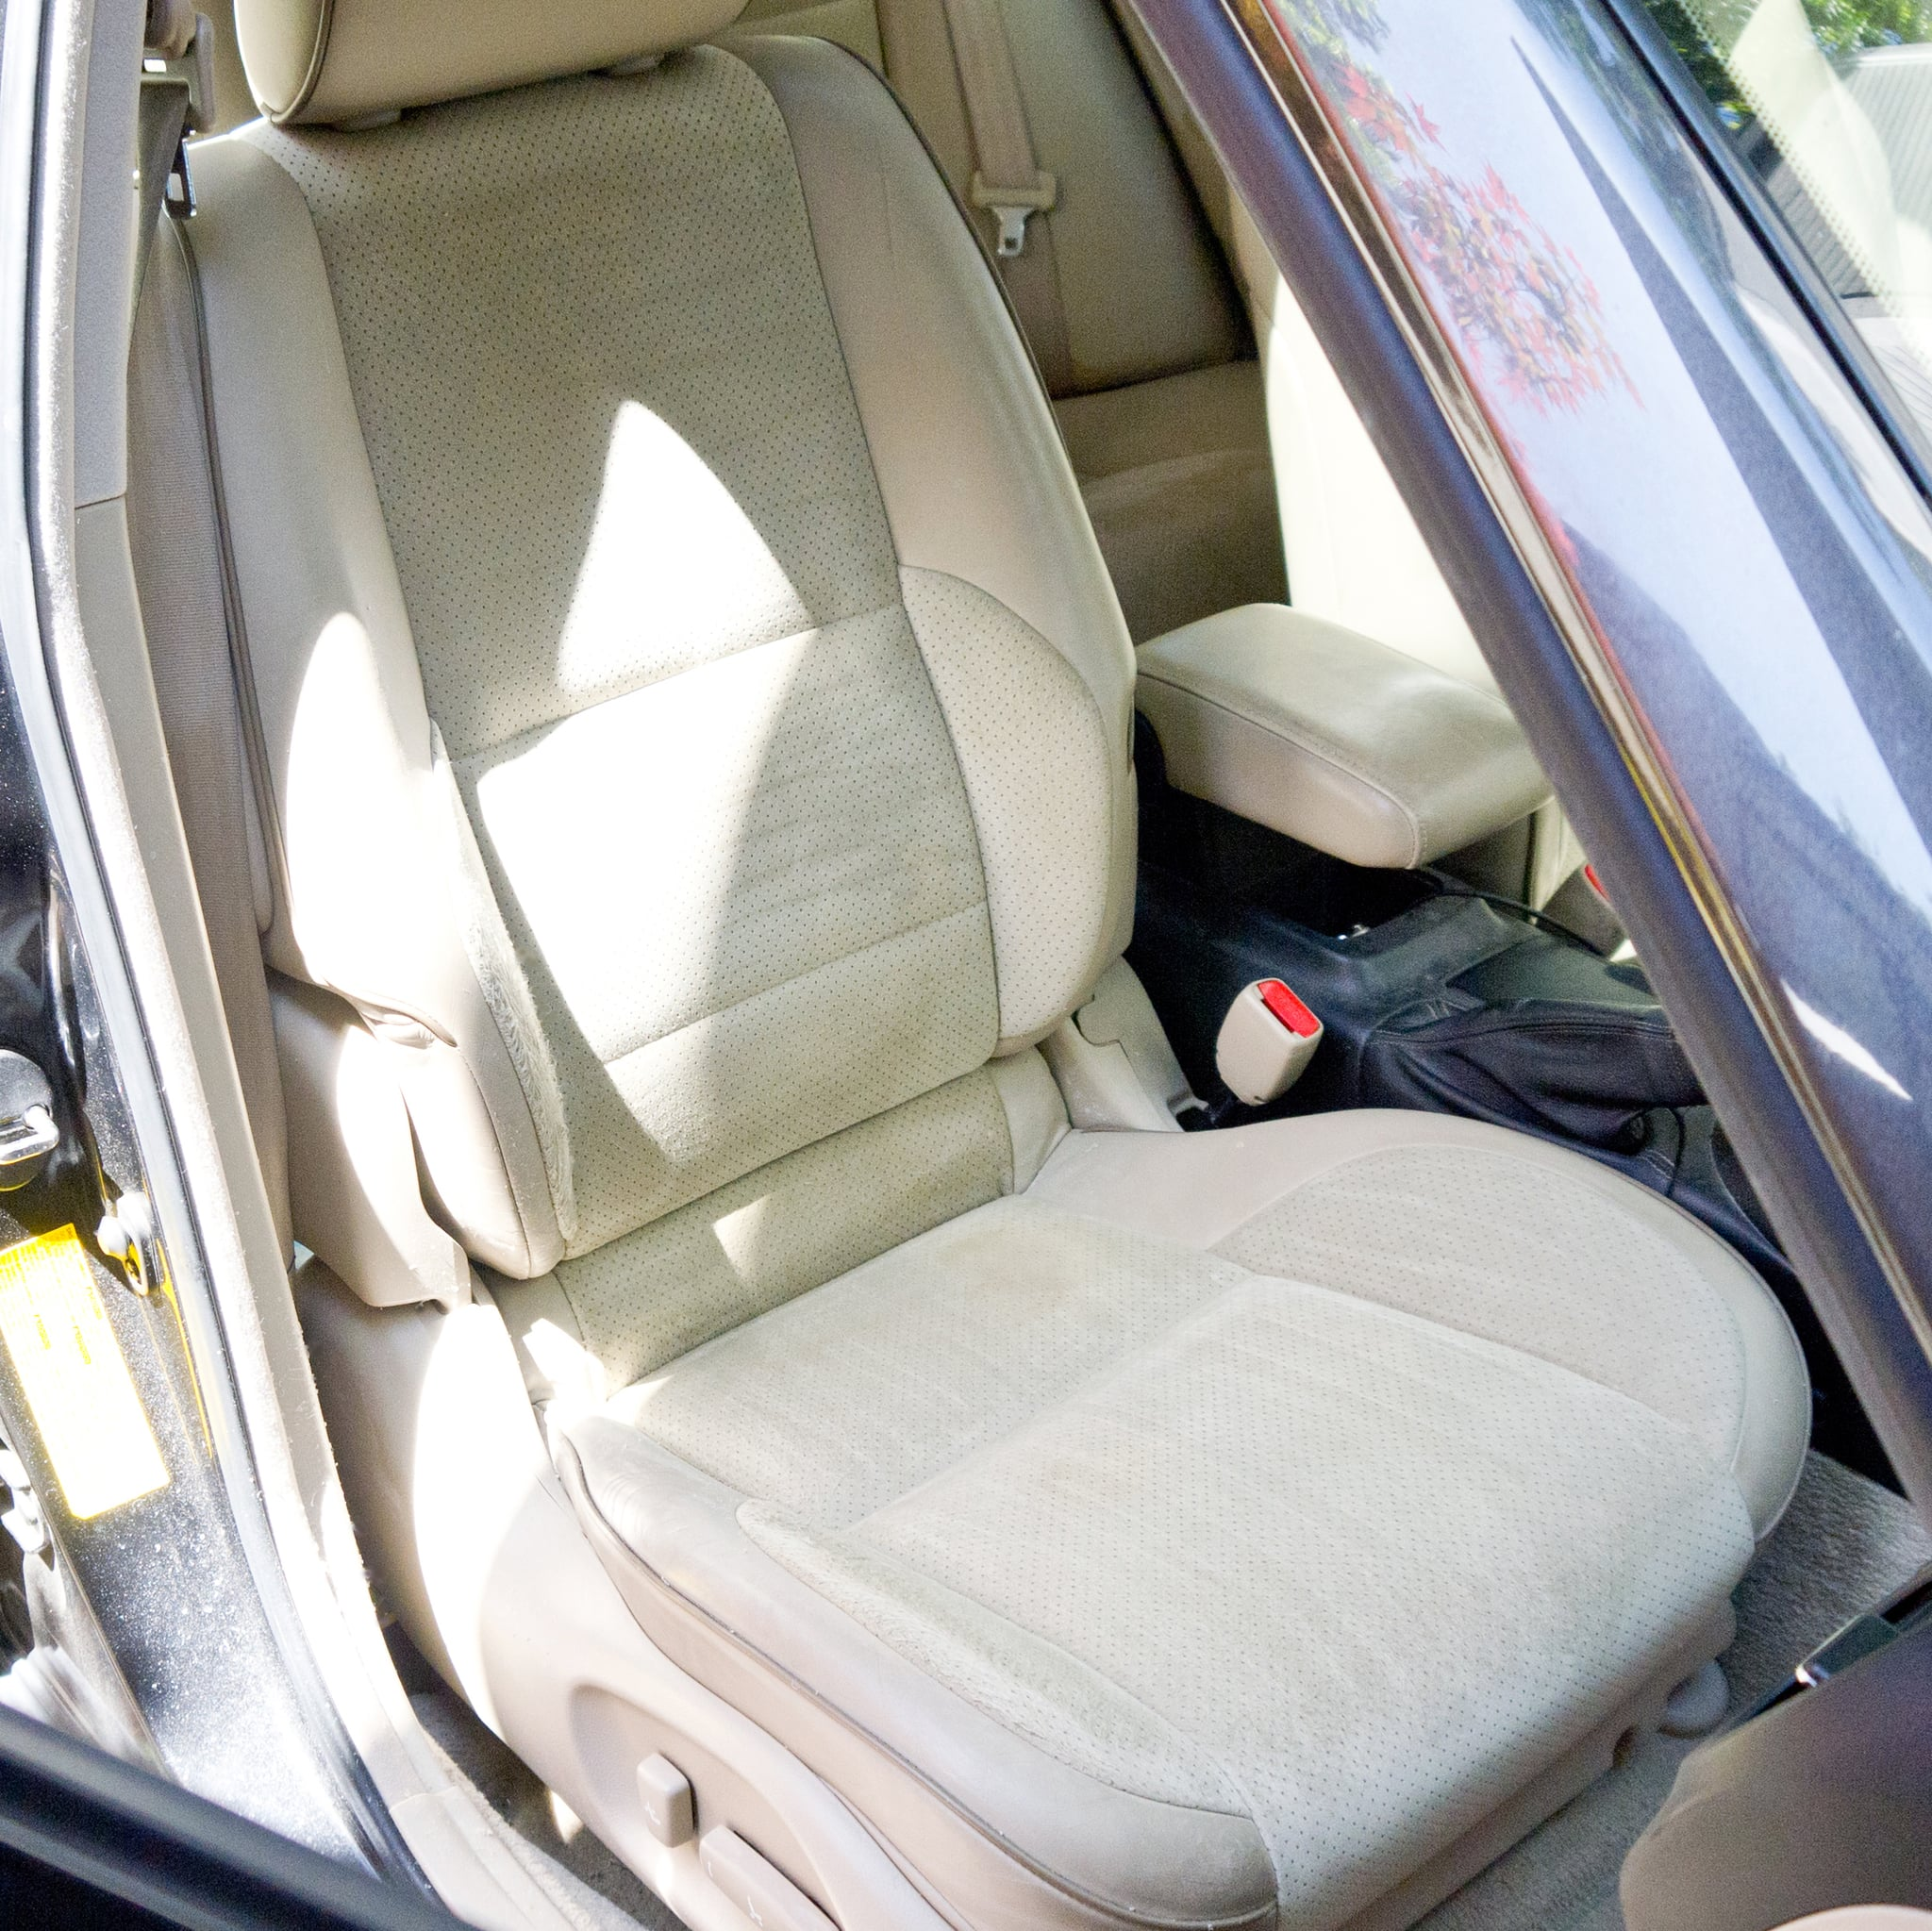 How to Clean Car Seats | POPSUGAR Smart Living